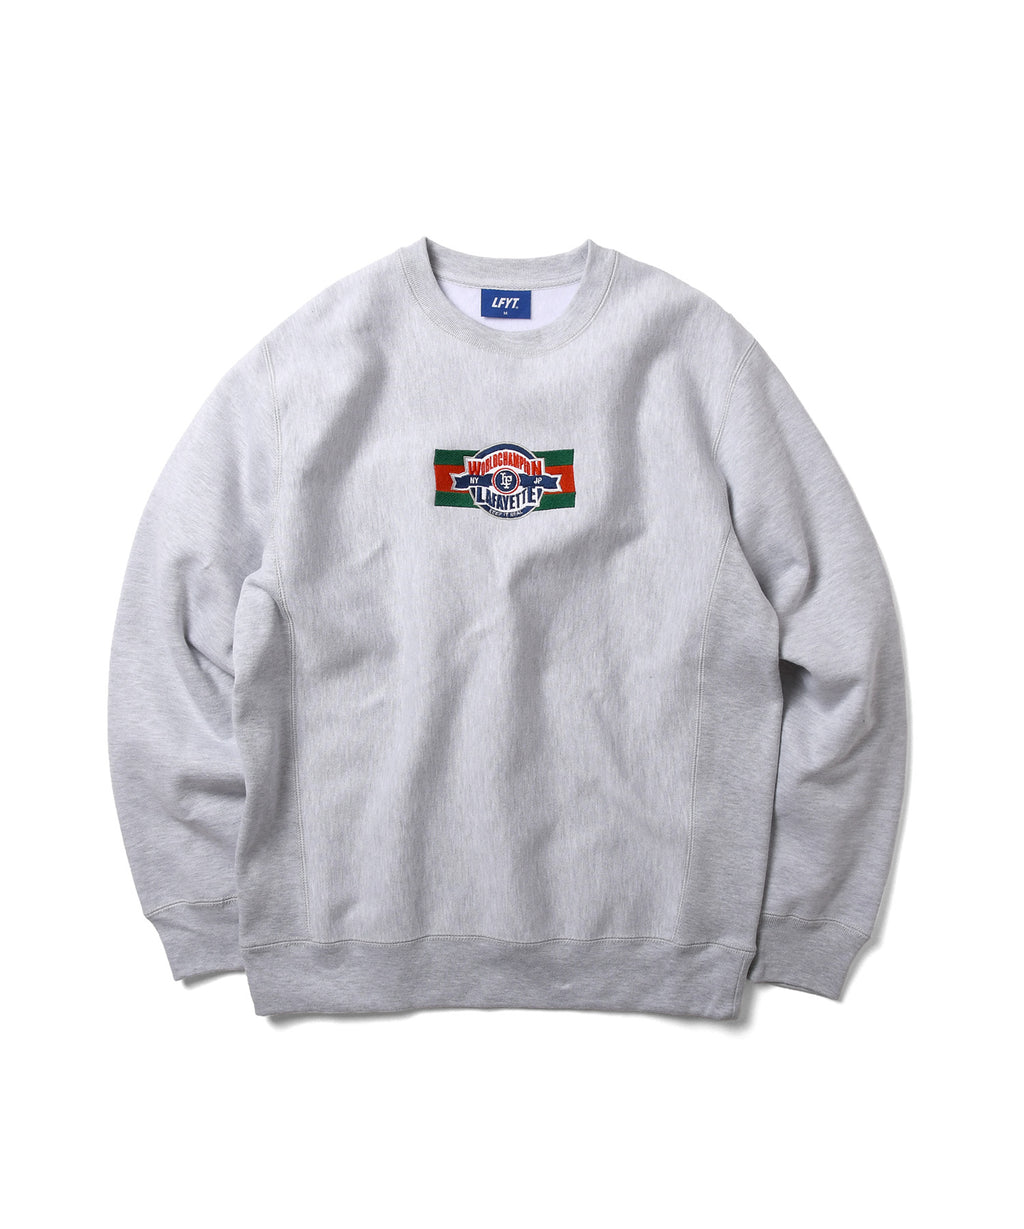 LF CHAMPION EMBLEM LOGO CREWNECK SWEATSHIRT LS210701 HEATHER GRAY